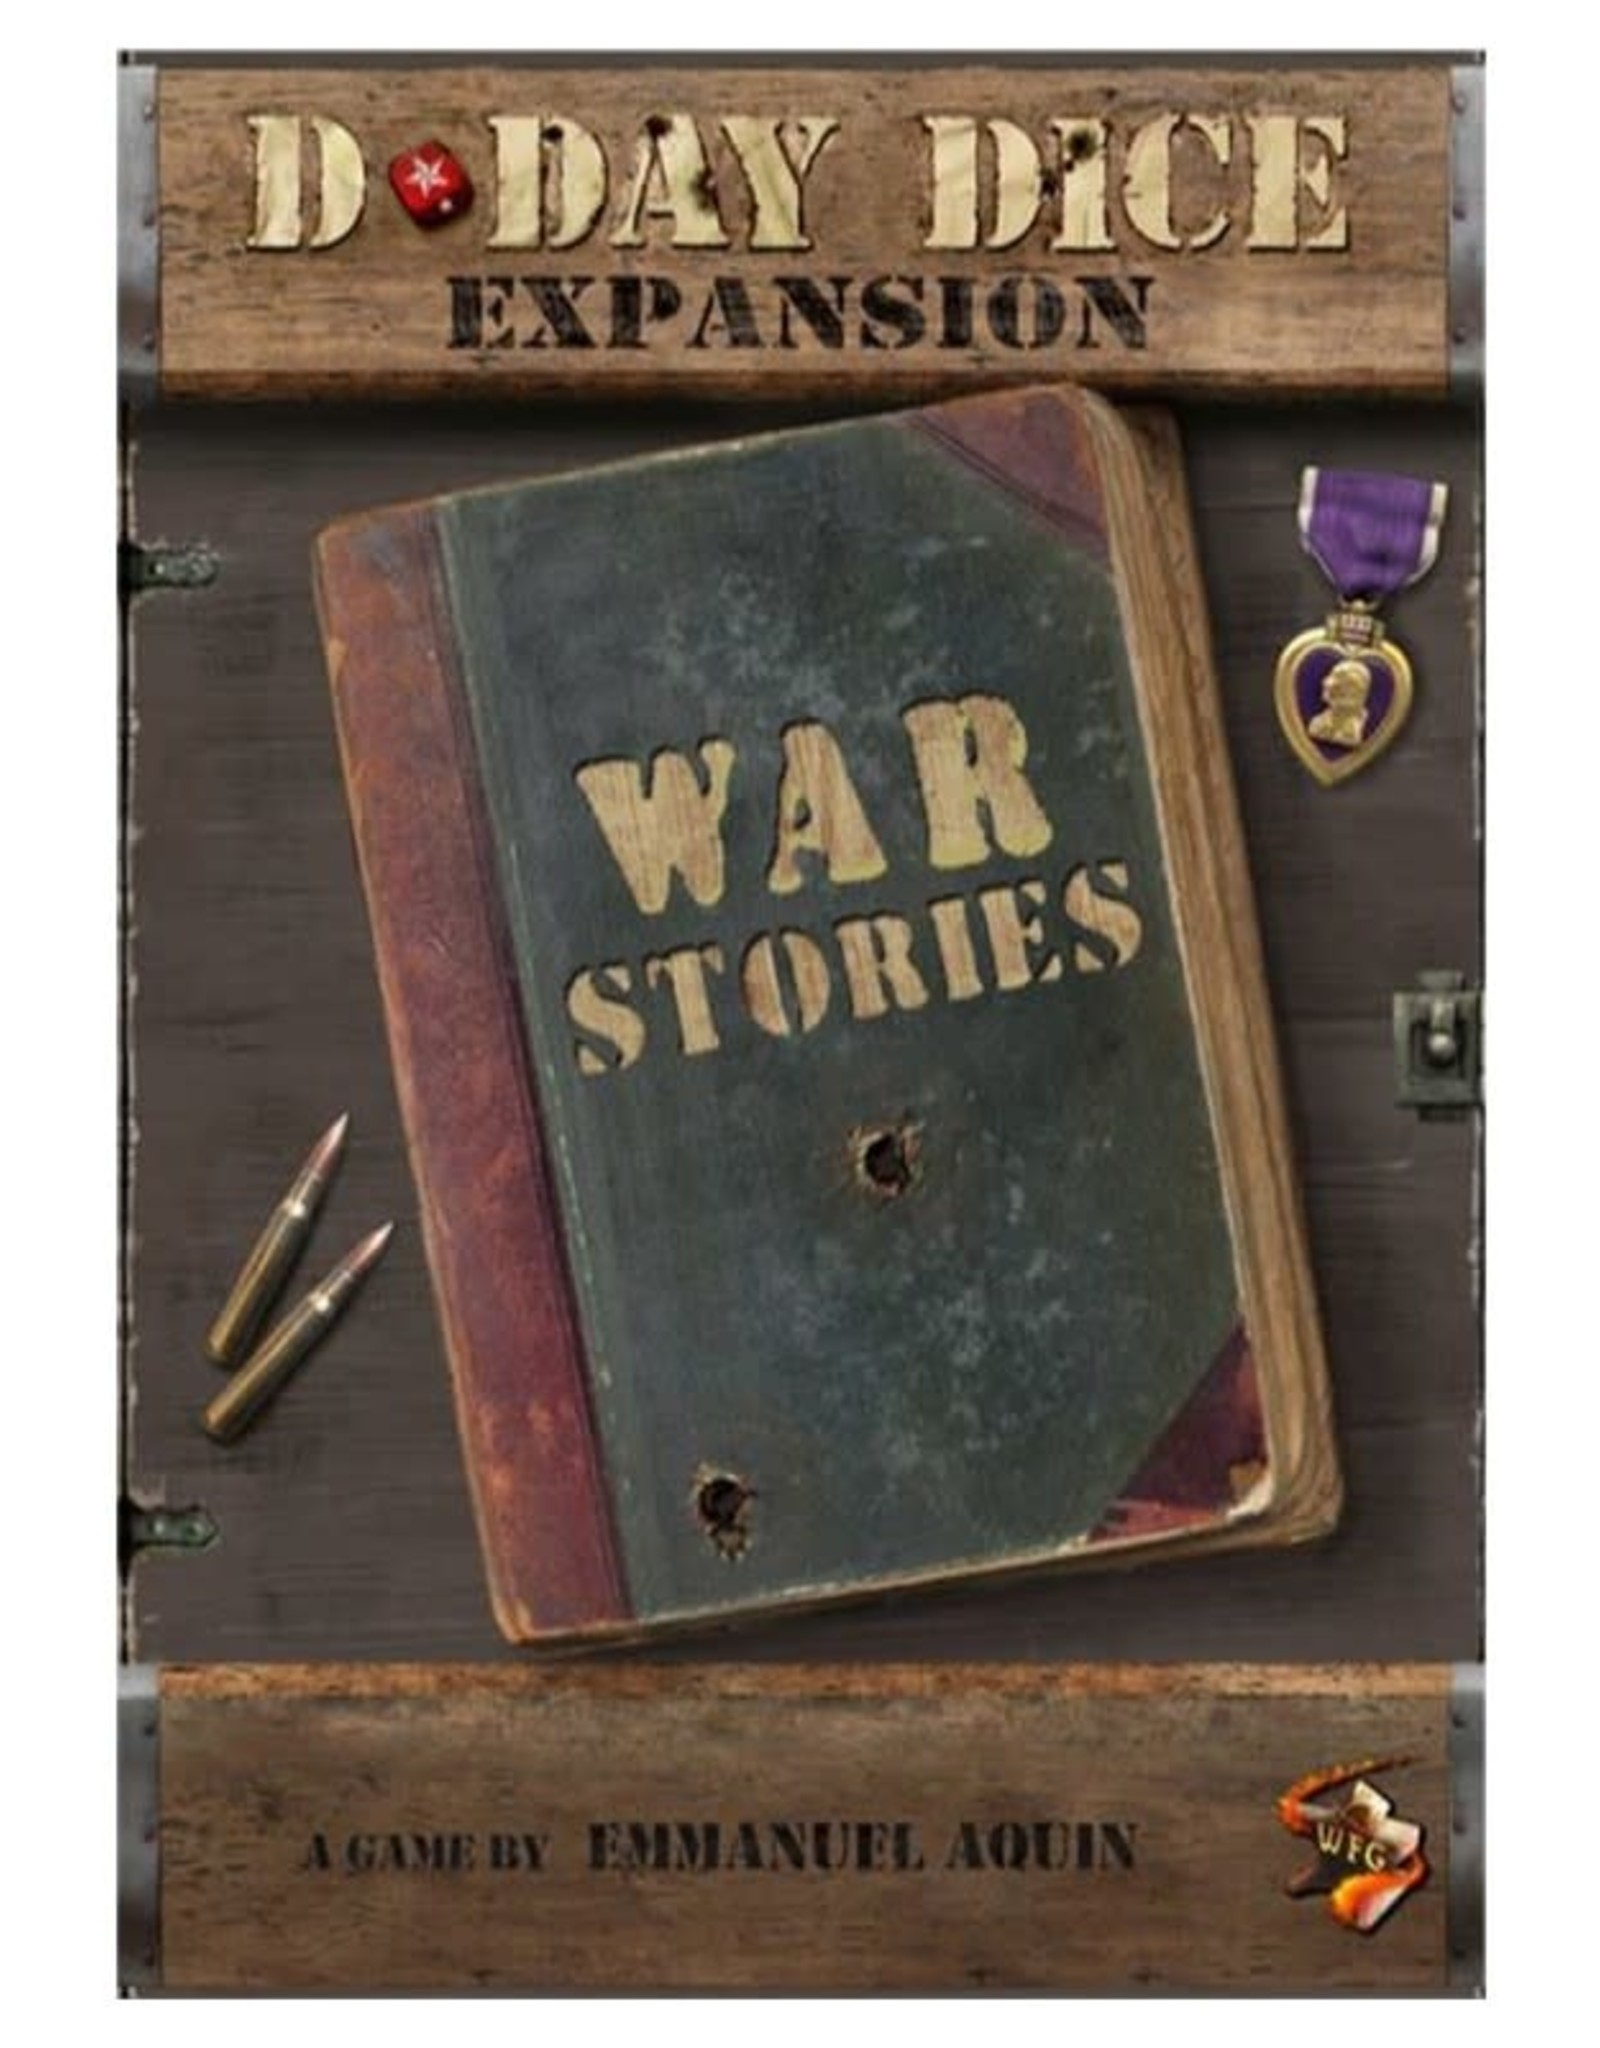 Miscellaneous D-Day Dice: War Stories Expansion